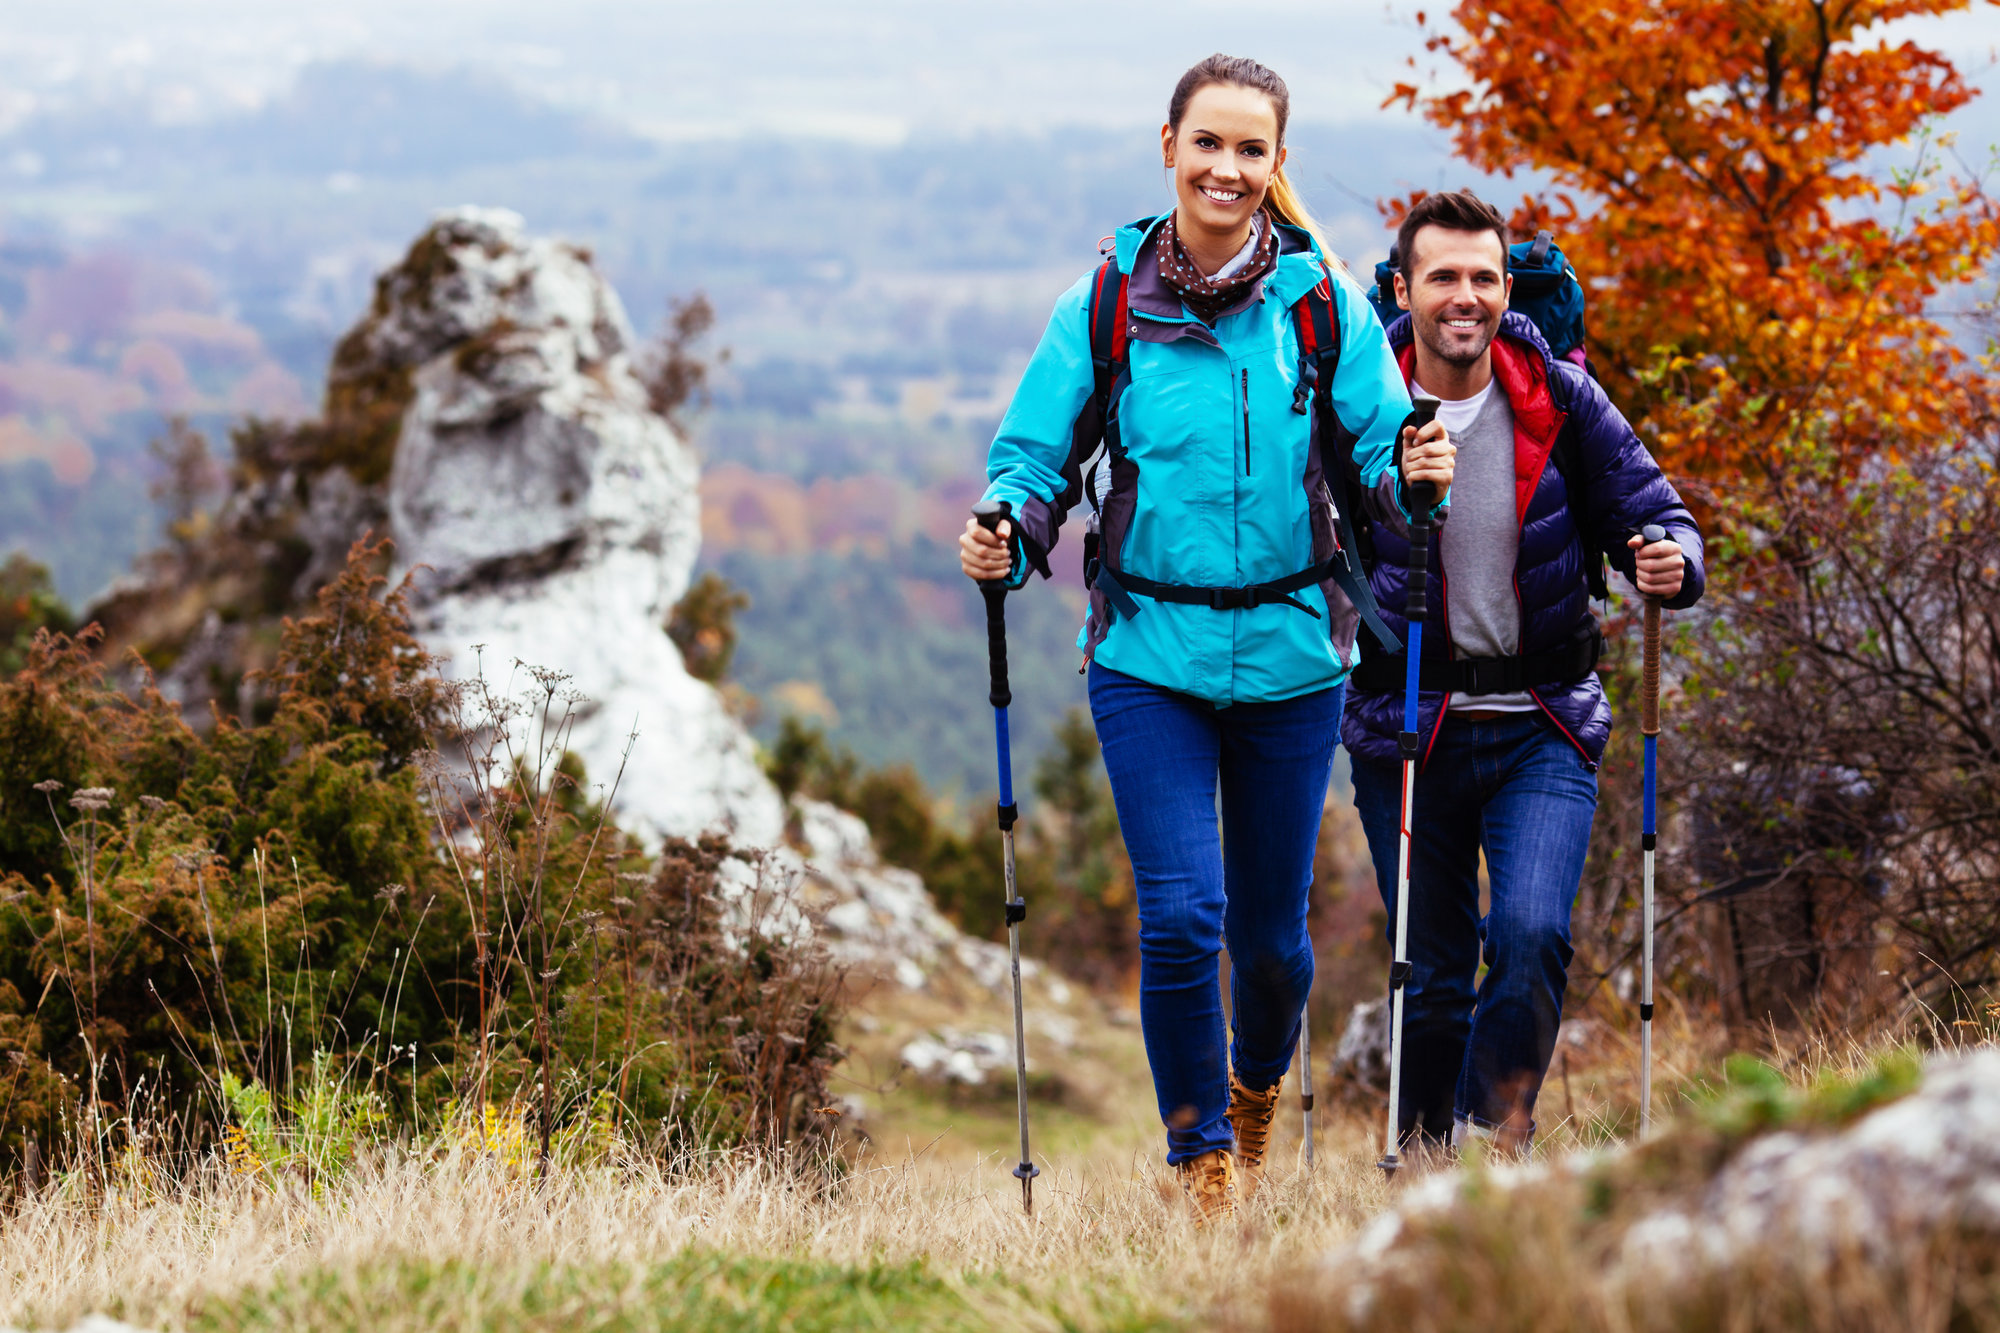 Best location for Hiking and biking